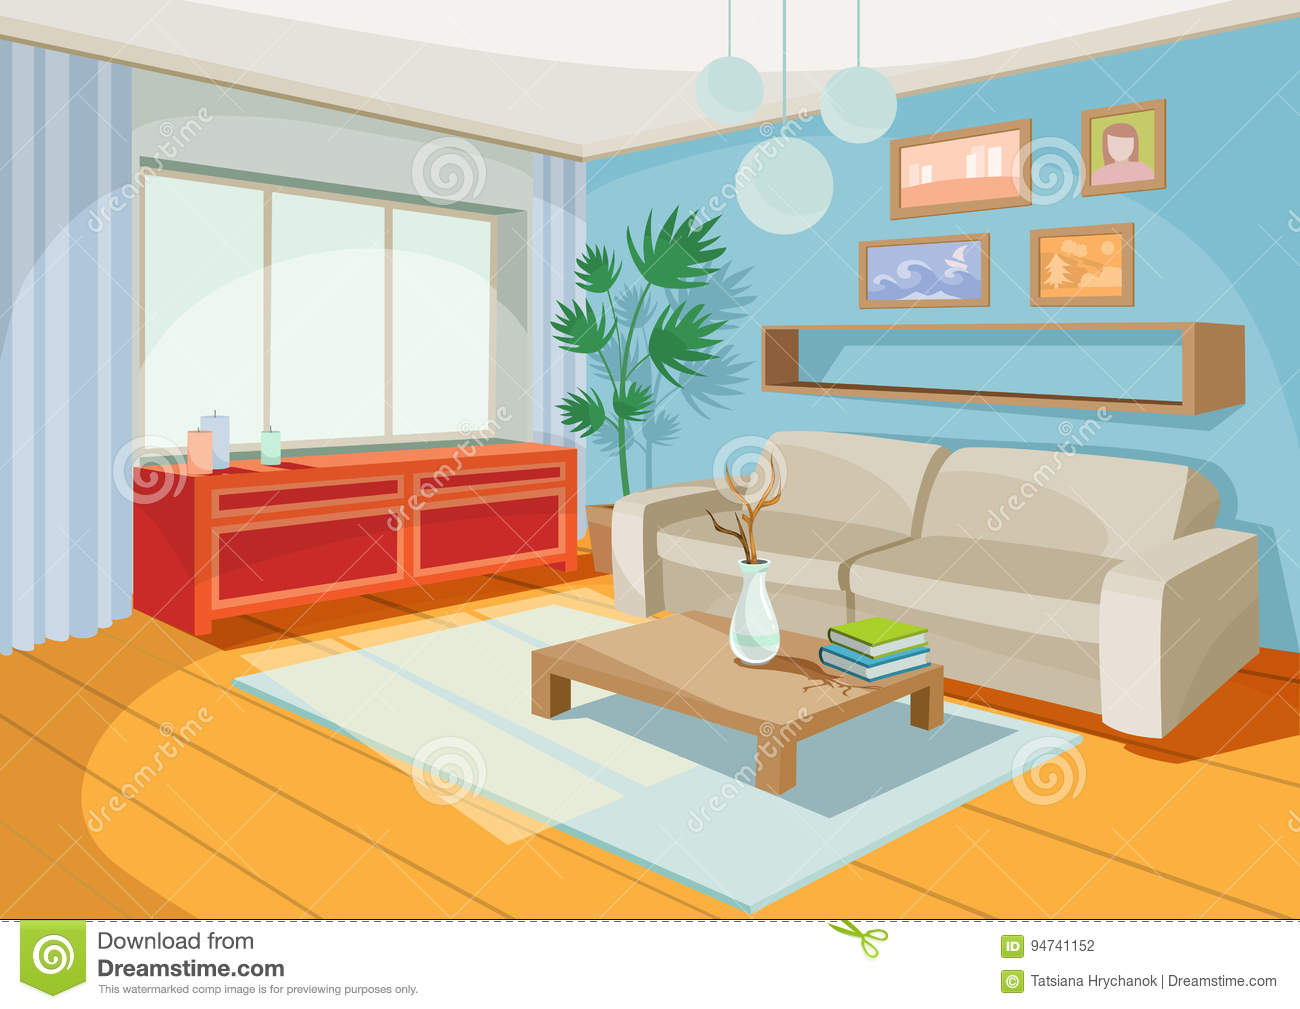 Cartoon home cartoon vector 41466459 for Cartoon picture of a living room